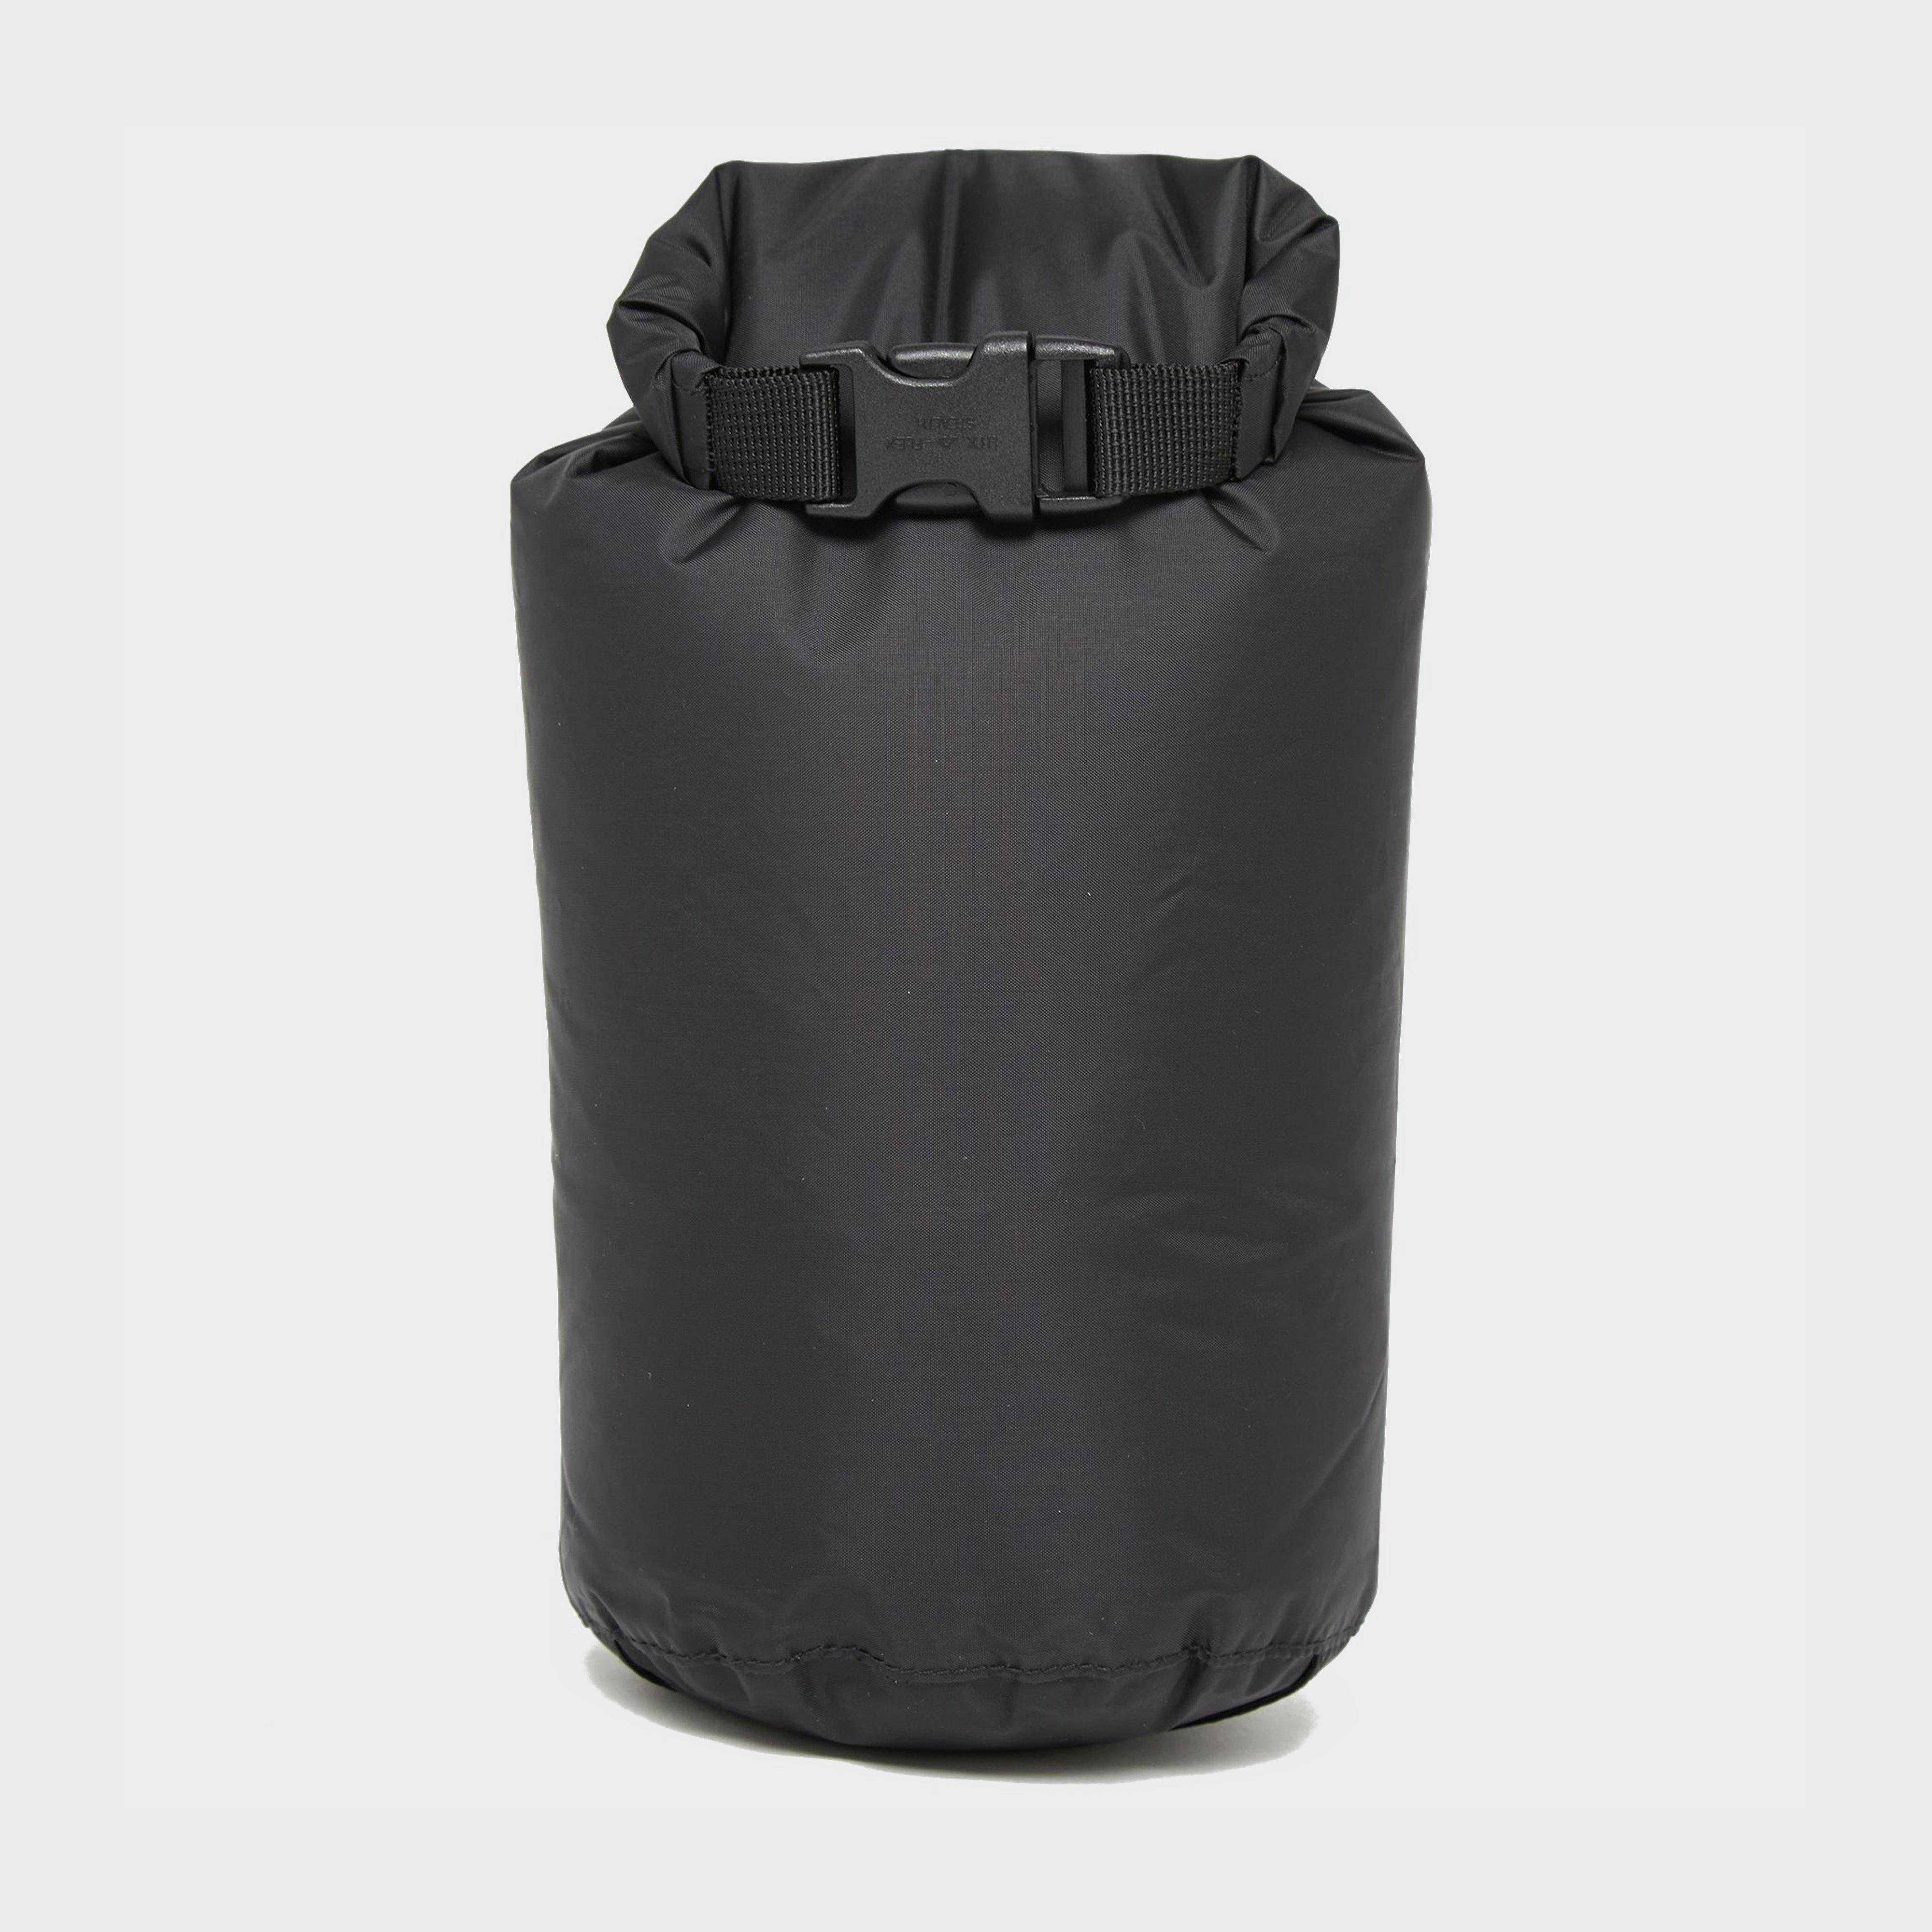 Exped Expedition 3L Dry Fold Bag, Black